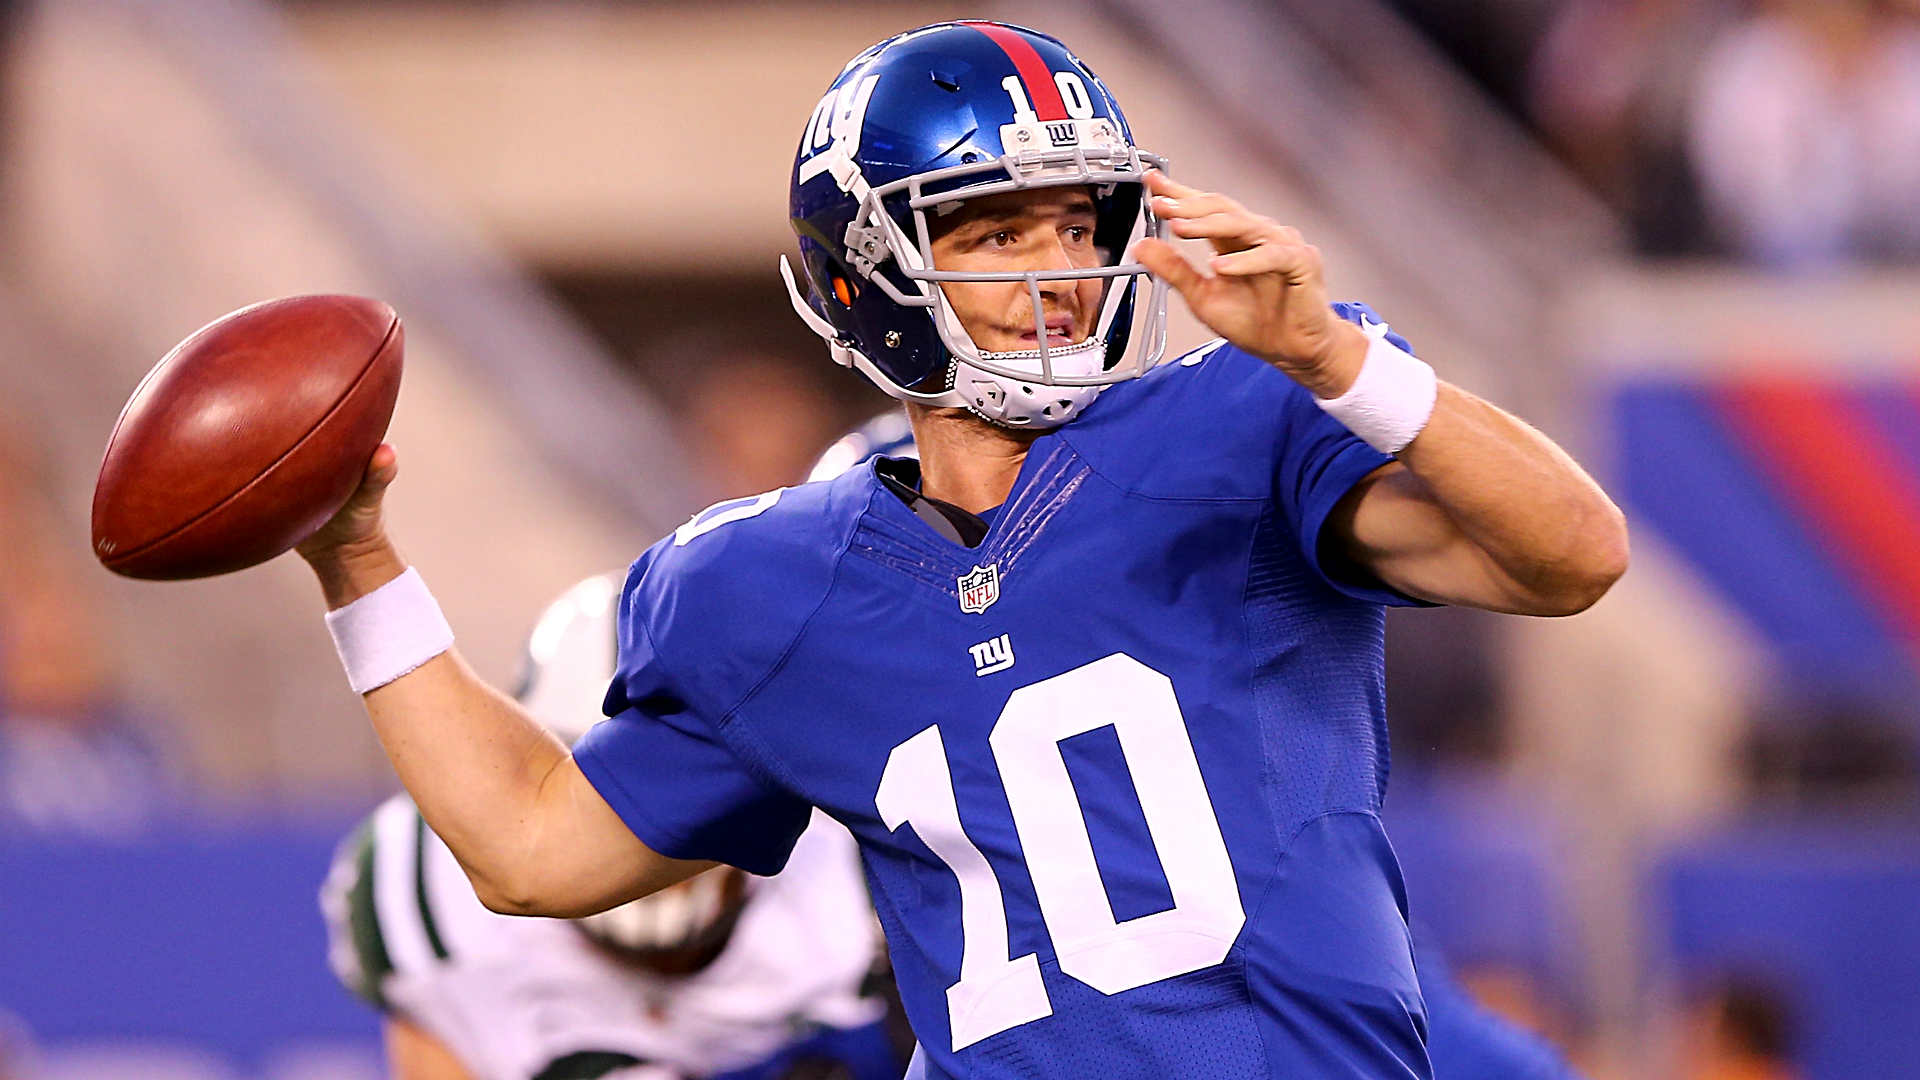 Eli Manning Giants reportedly agree to terms on four year $84M